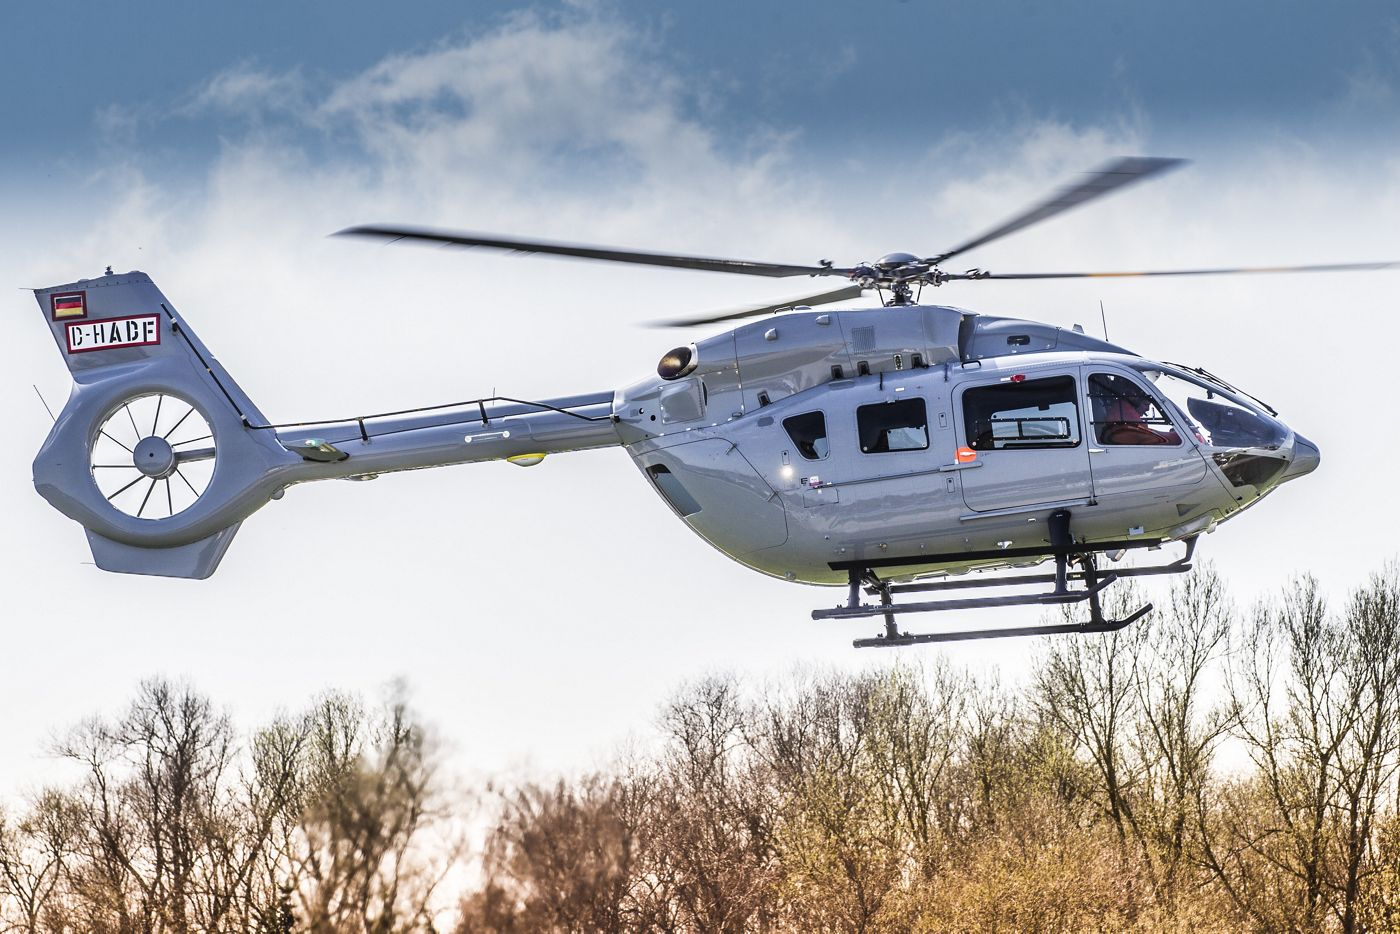 Helicopters offers H145 with alternate gross weight